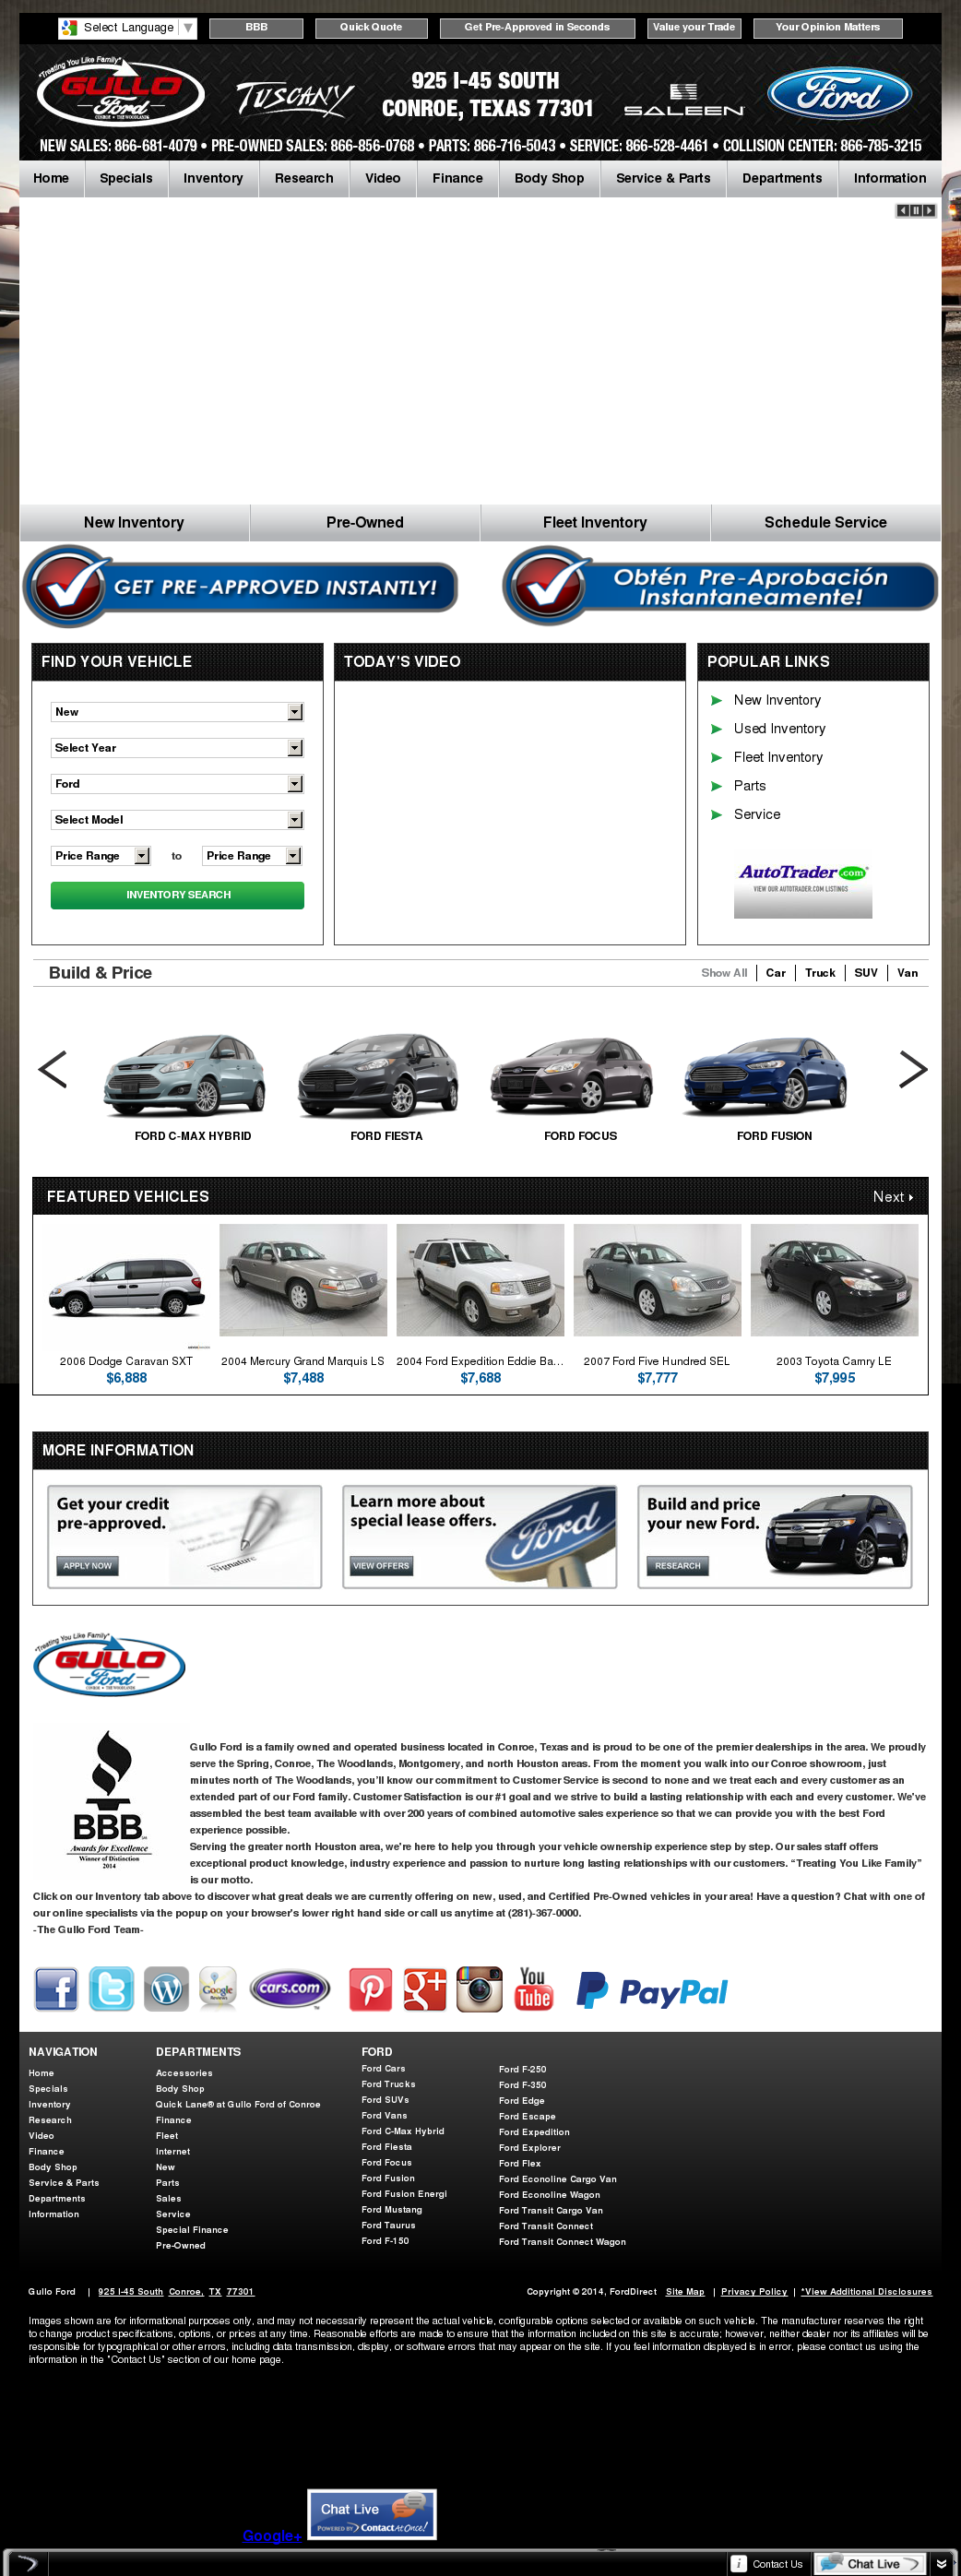 Gullo Ford Conroe Texas >> Gullo Ford Competitors Revenue And Employees Owler